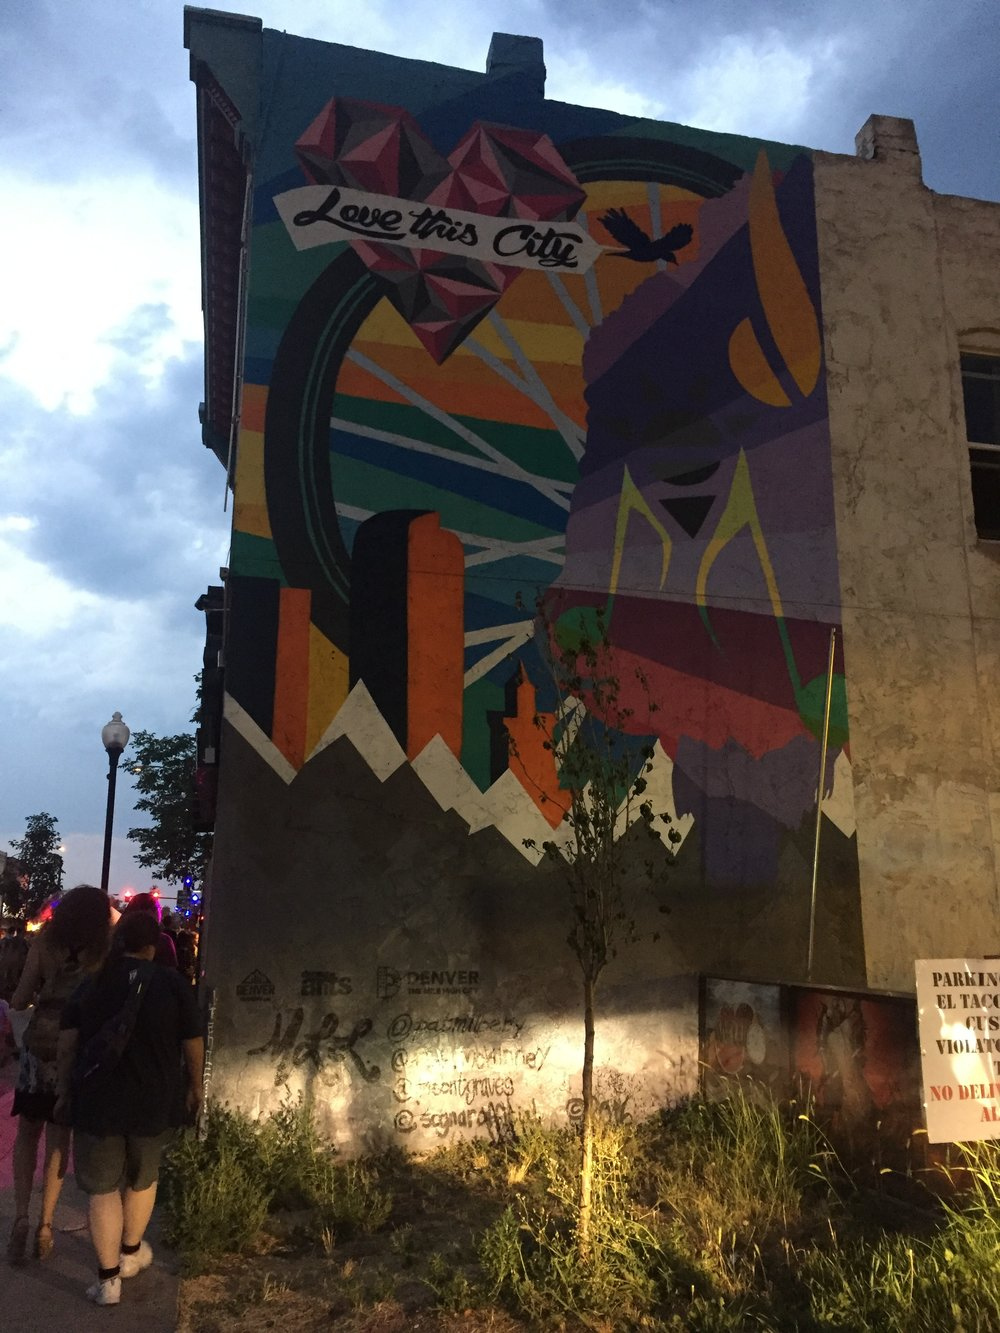 Love This City. First Friday Art walks in Denver